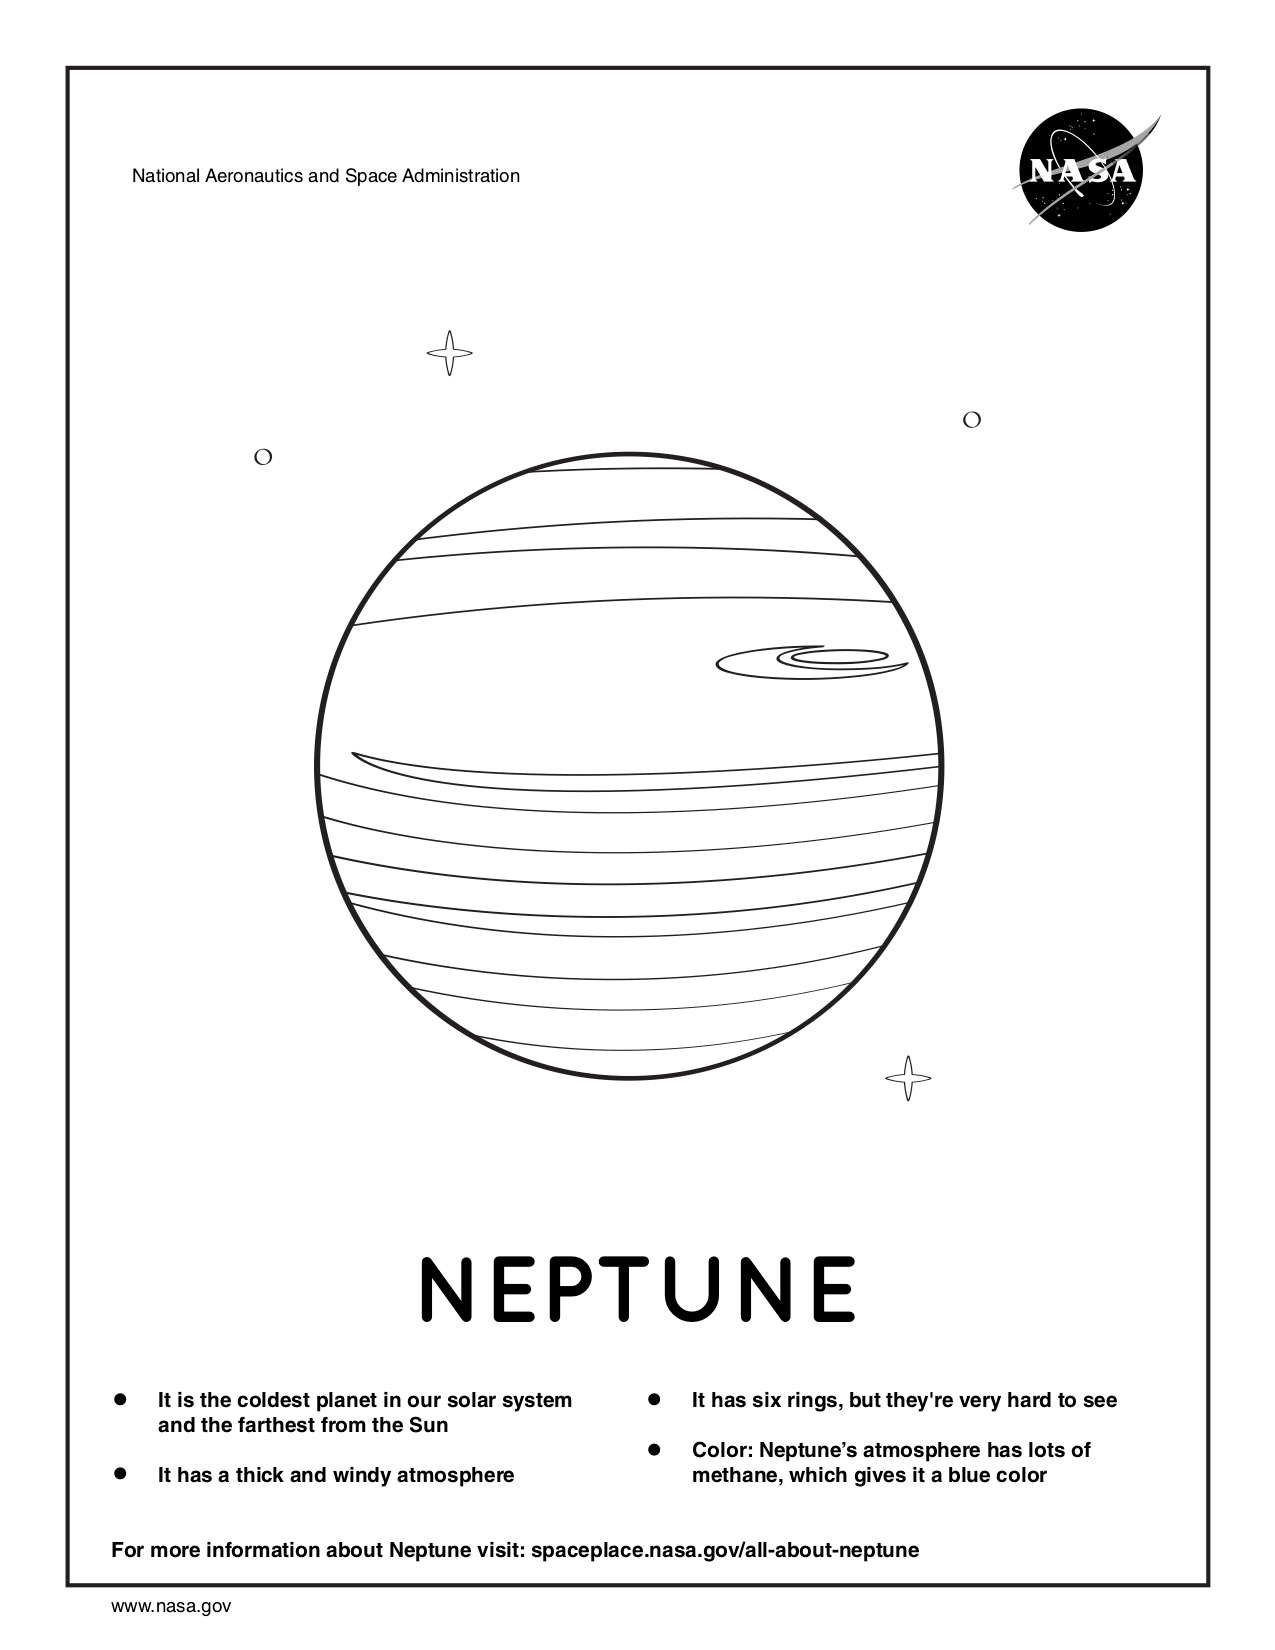 NASA Coloring Pages | NASA Space Place